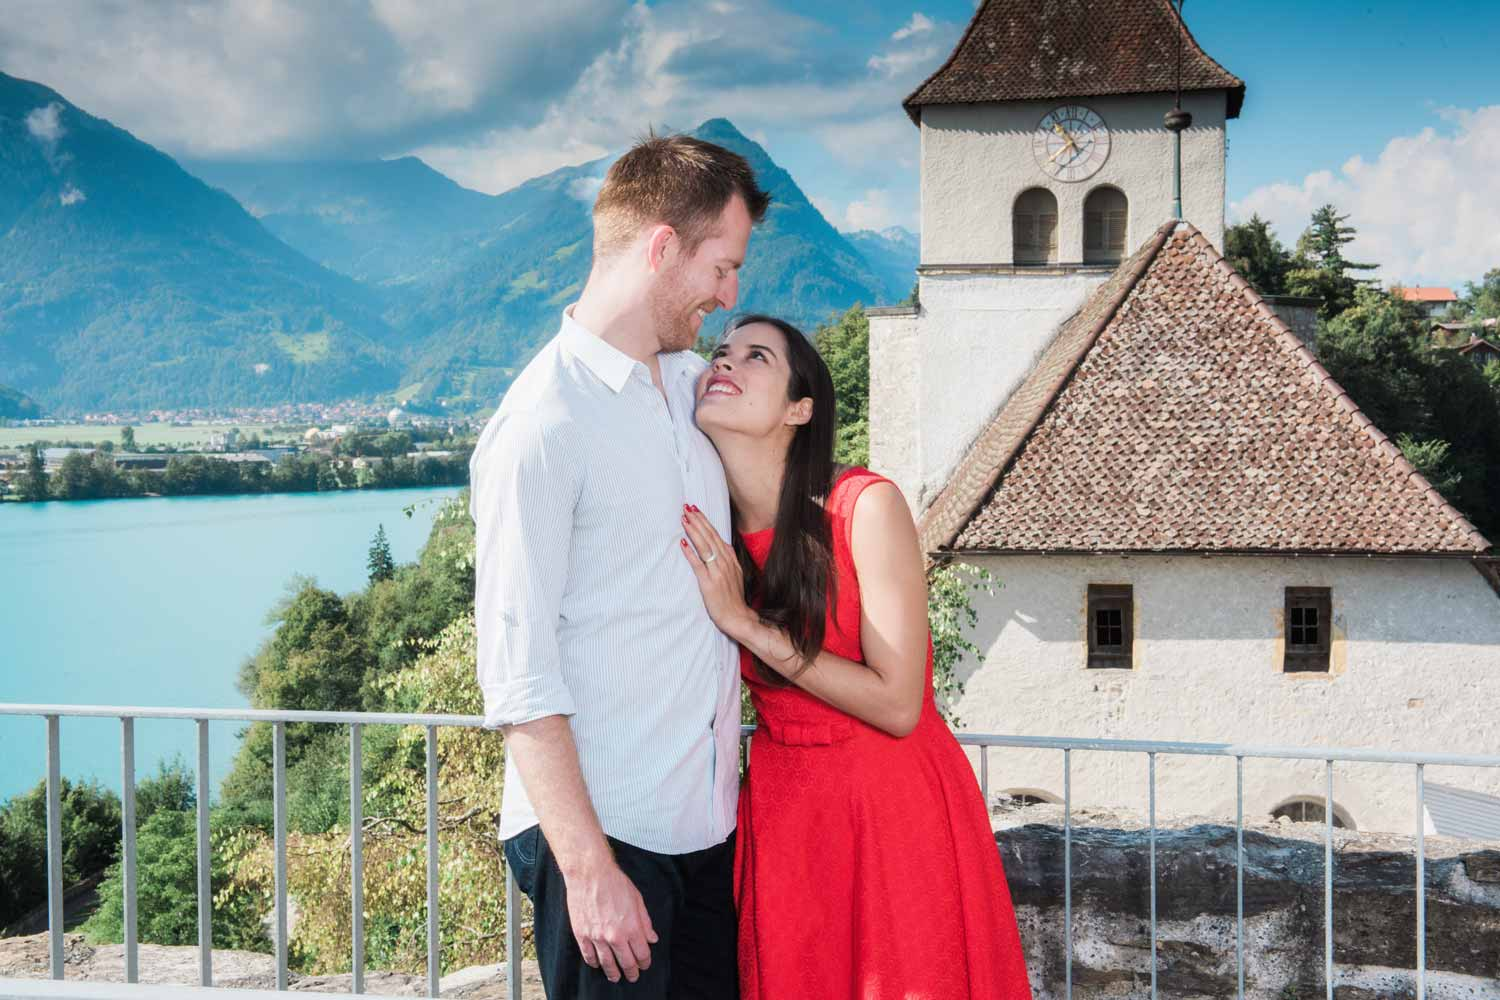 couples photo shoot in Ringgenberg